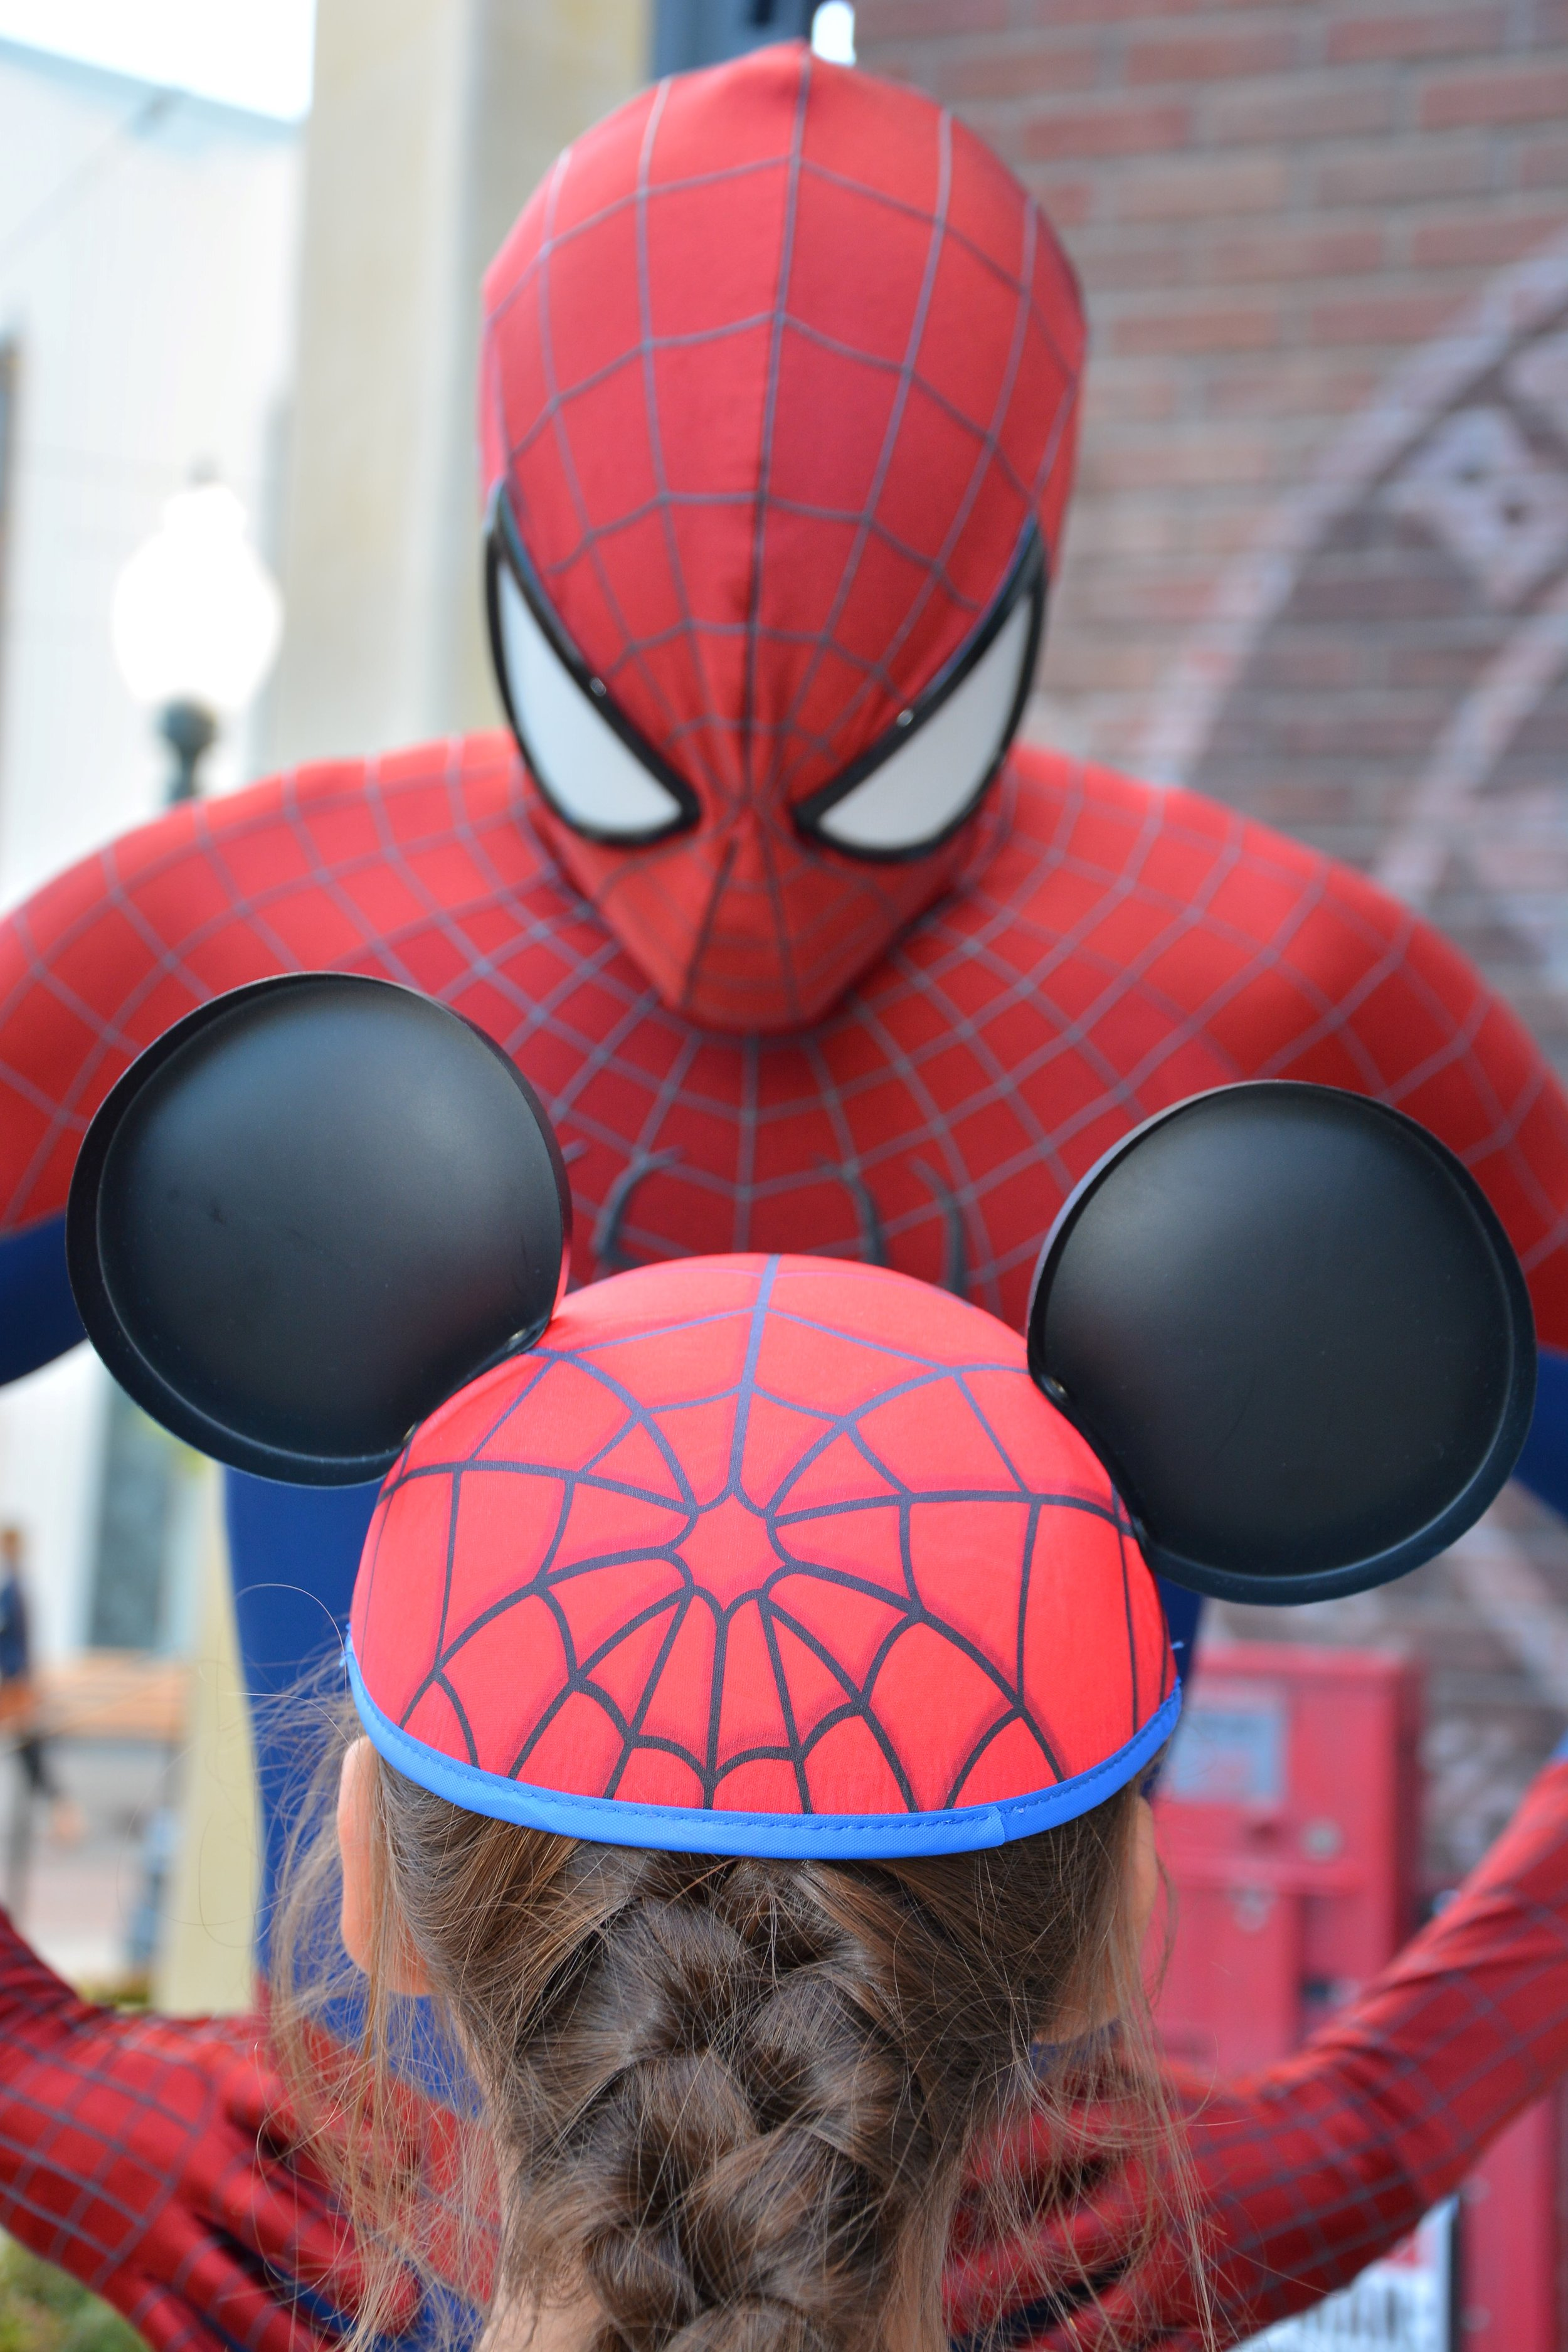 By the way, those are MY ears she borrowed for the meet and greet.  Daddy's a big Spidey fan as well.